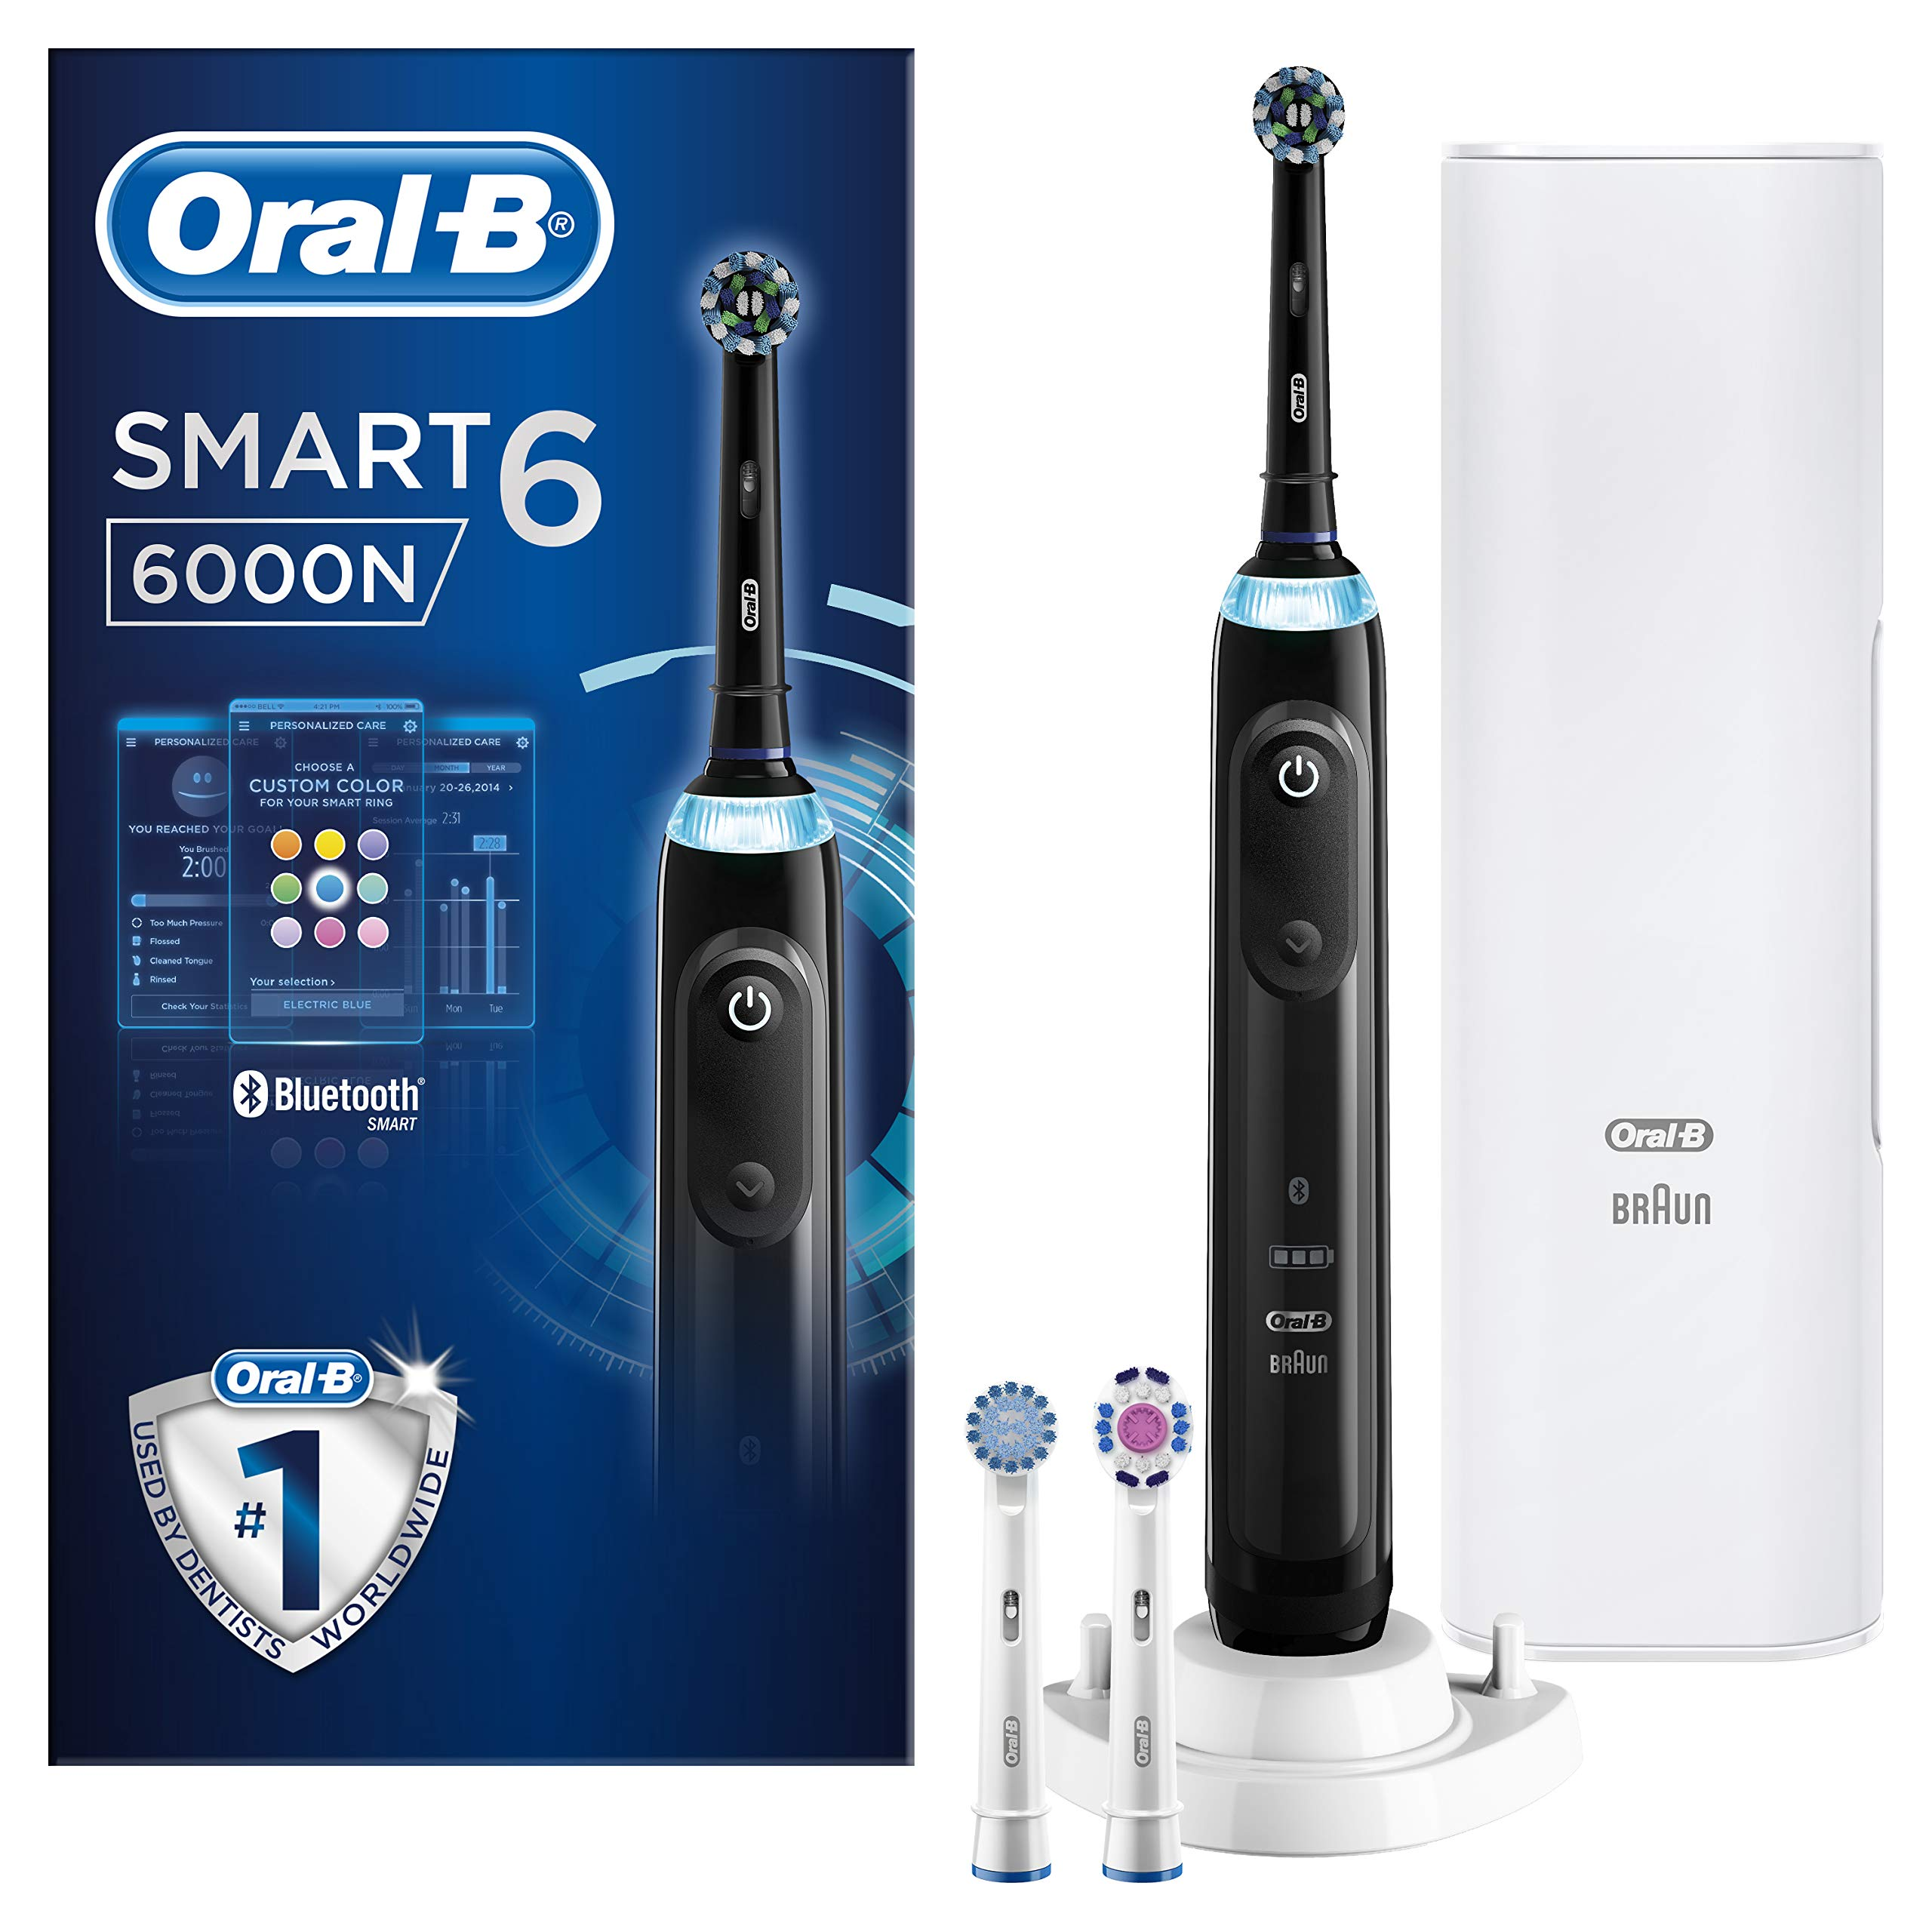 Oral-B Smart 6 6000N CrossAction Electric Toothbrush, 1 Black App Connected Handle, 5 Modes, Pressure Sensor, 3 Toothbrush Heads, Premium Travel Case, 2 Pin UK Plug, Gift, With No Visible Mode Display